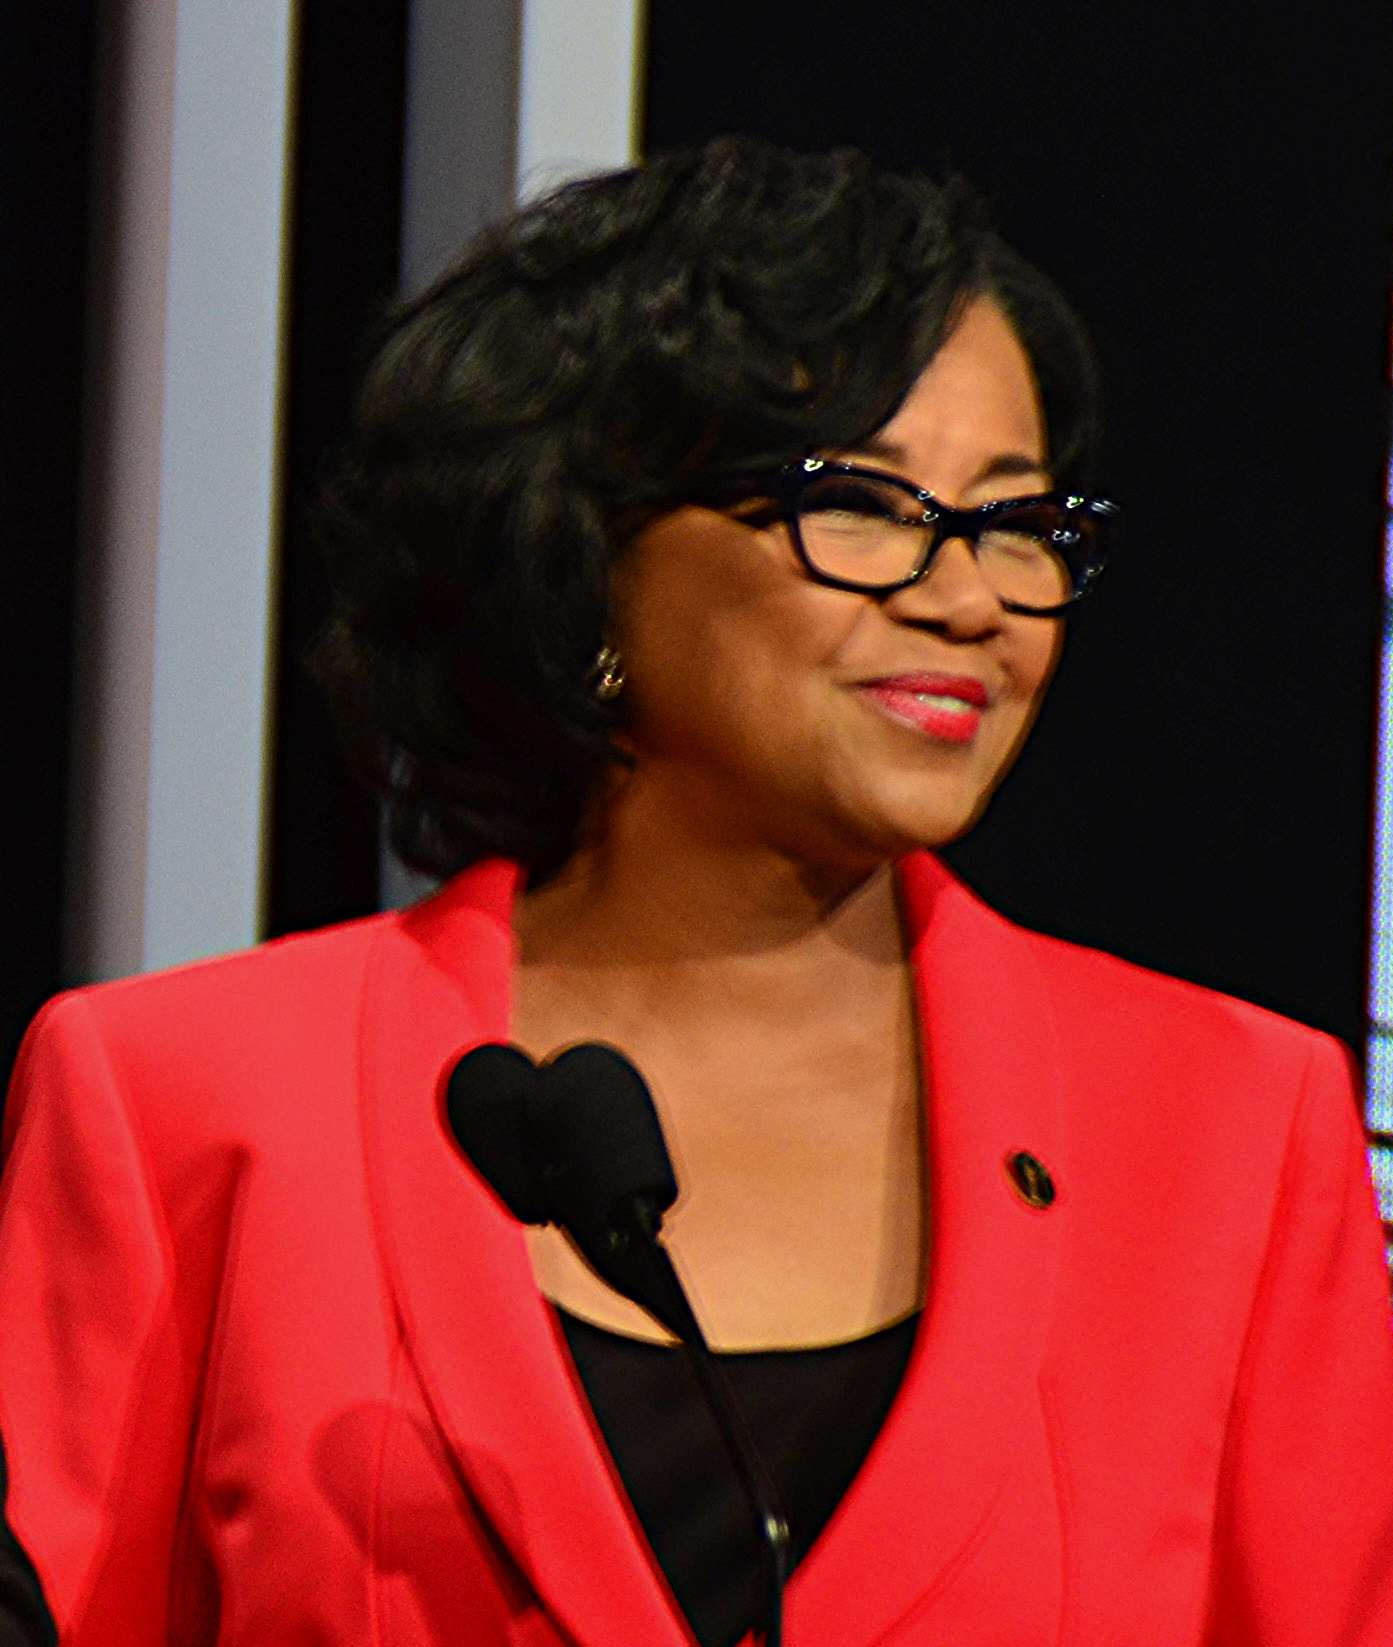 Prominent Asian Film Figures Send Open Letter To The Academy Protesting Racist Joke Cheryl Boone Isaacs 87th Oscars Nominations Announcement